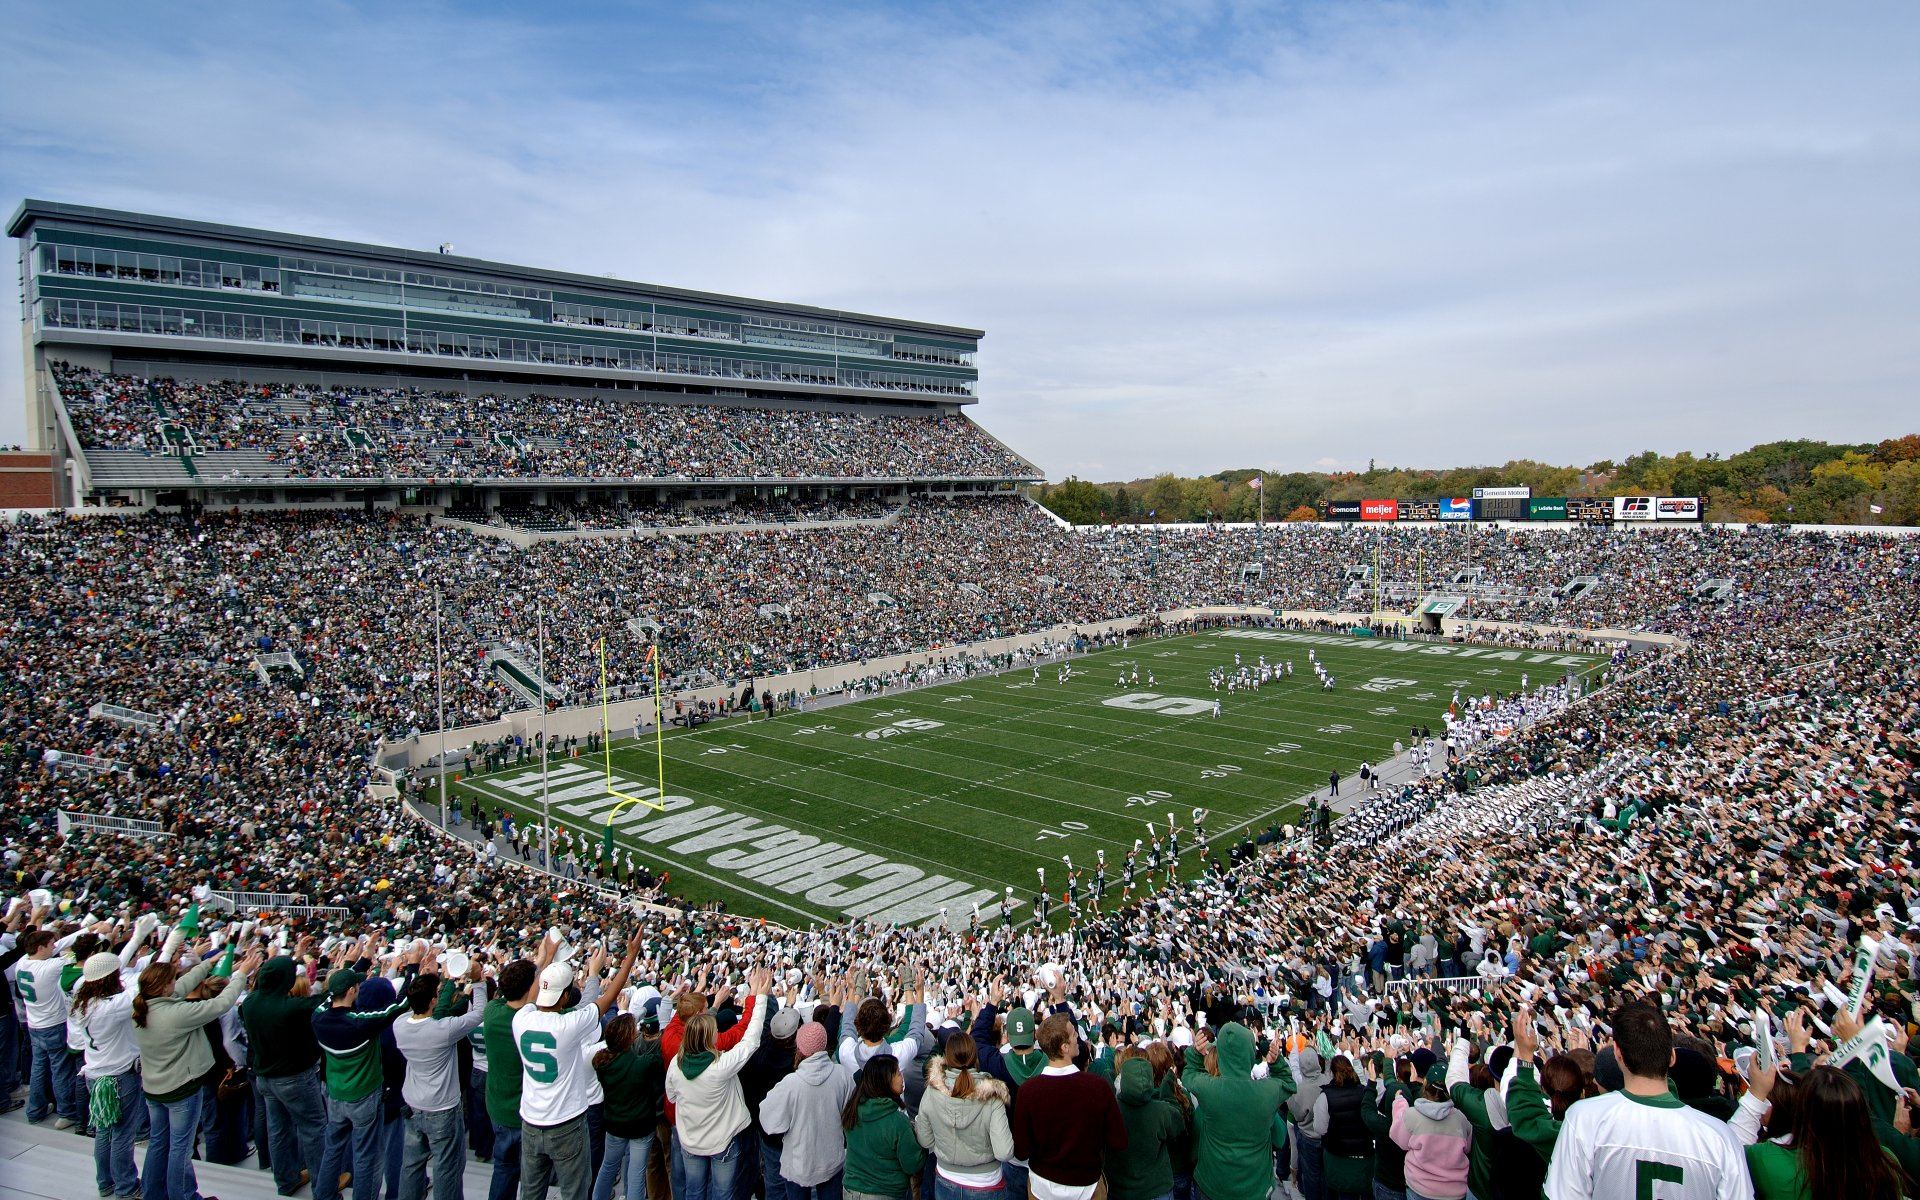 Michigan State University Wallpapers: Big Ten Conference College Football Stadiums Wallpapers